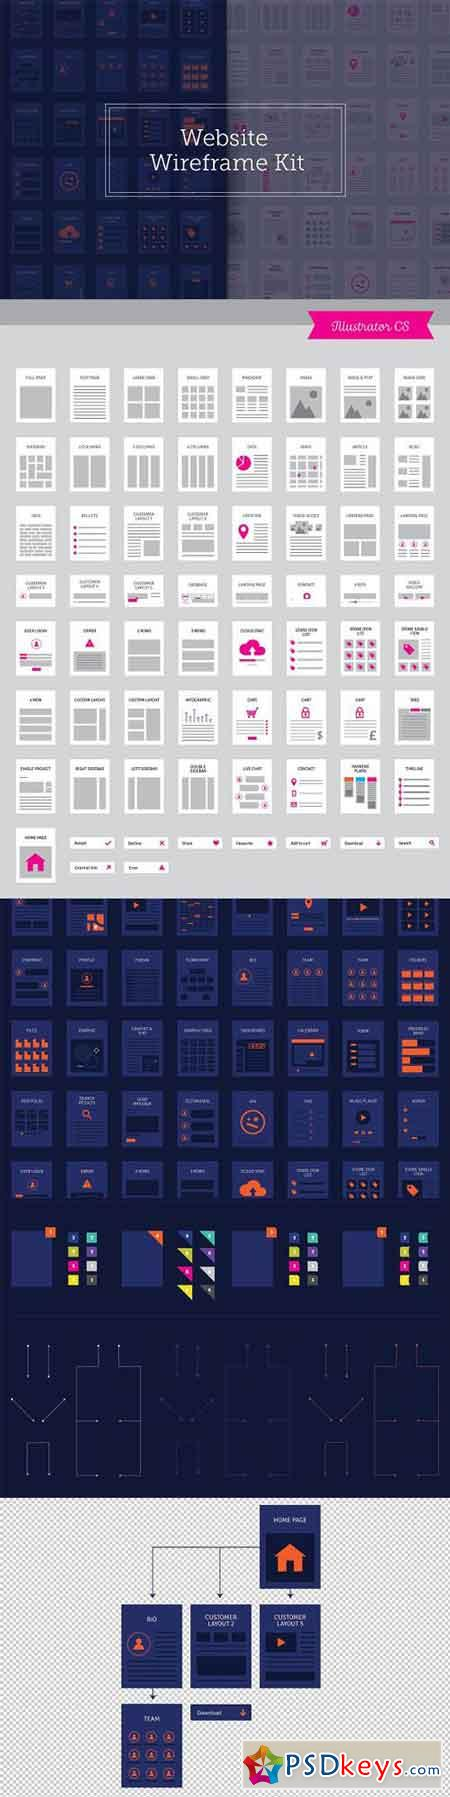 Website Wireframe Kit